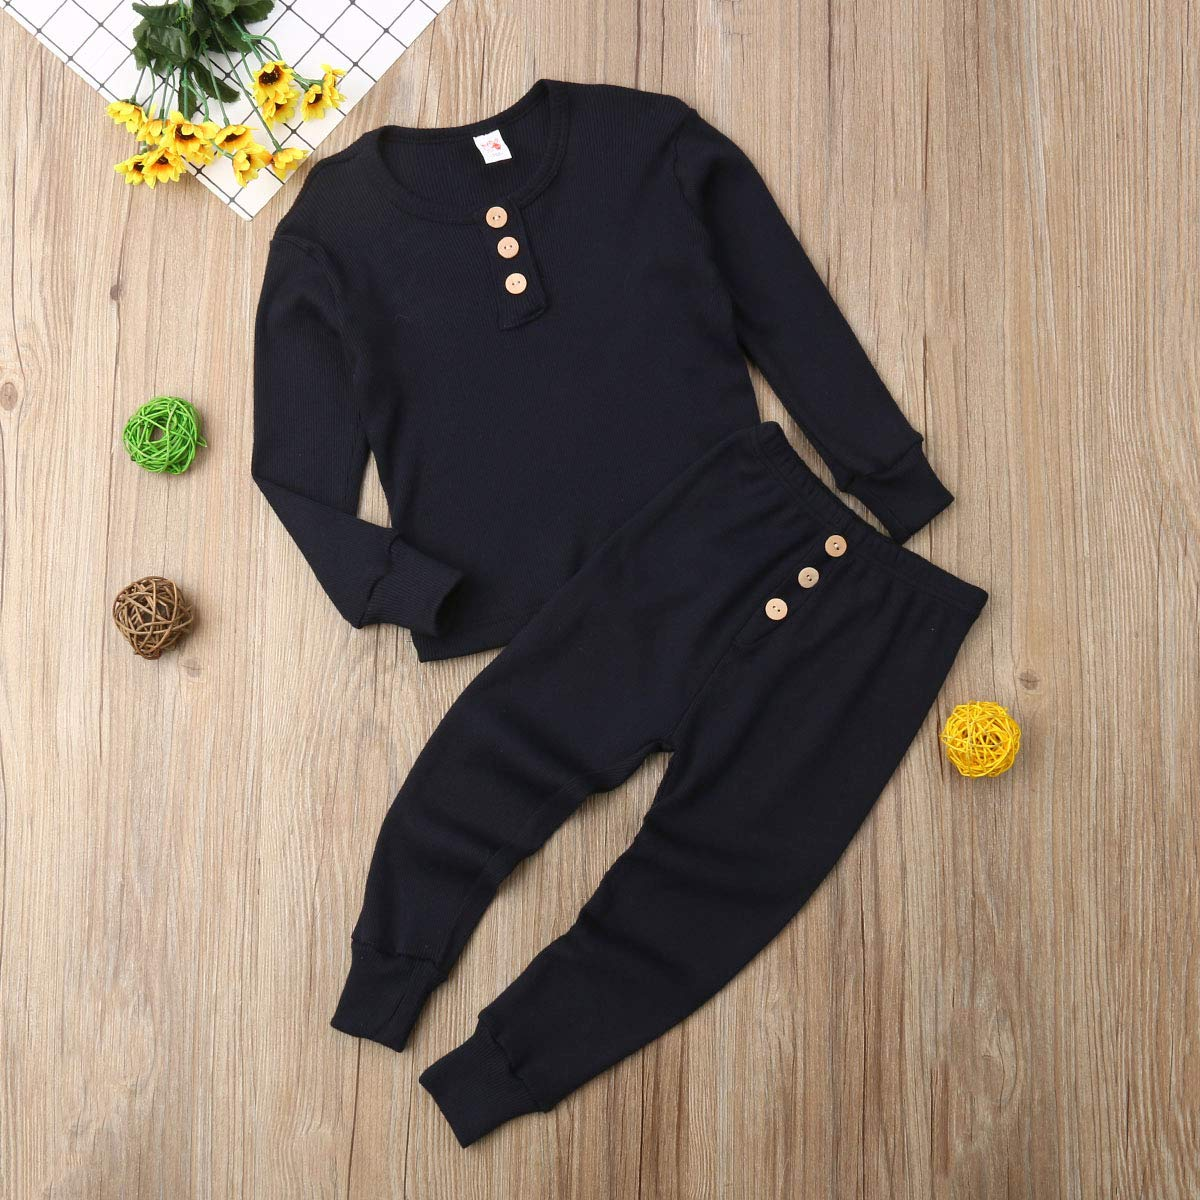 Two Piece Pajama Set Button Long Sleeve Cotton Top and Pants